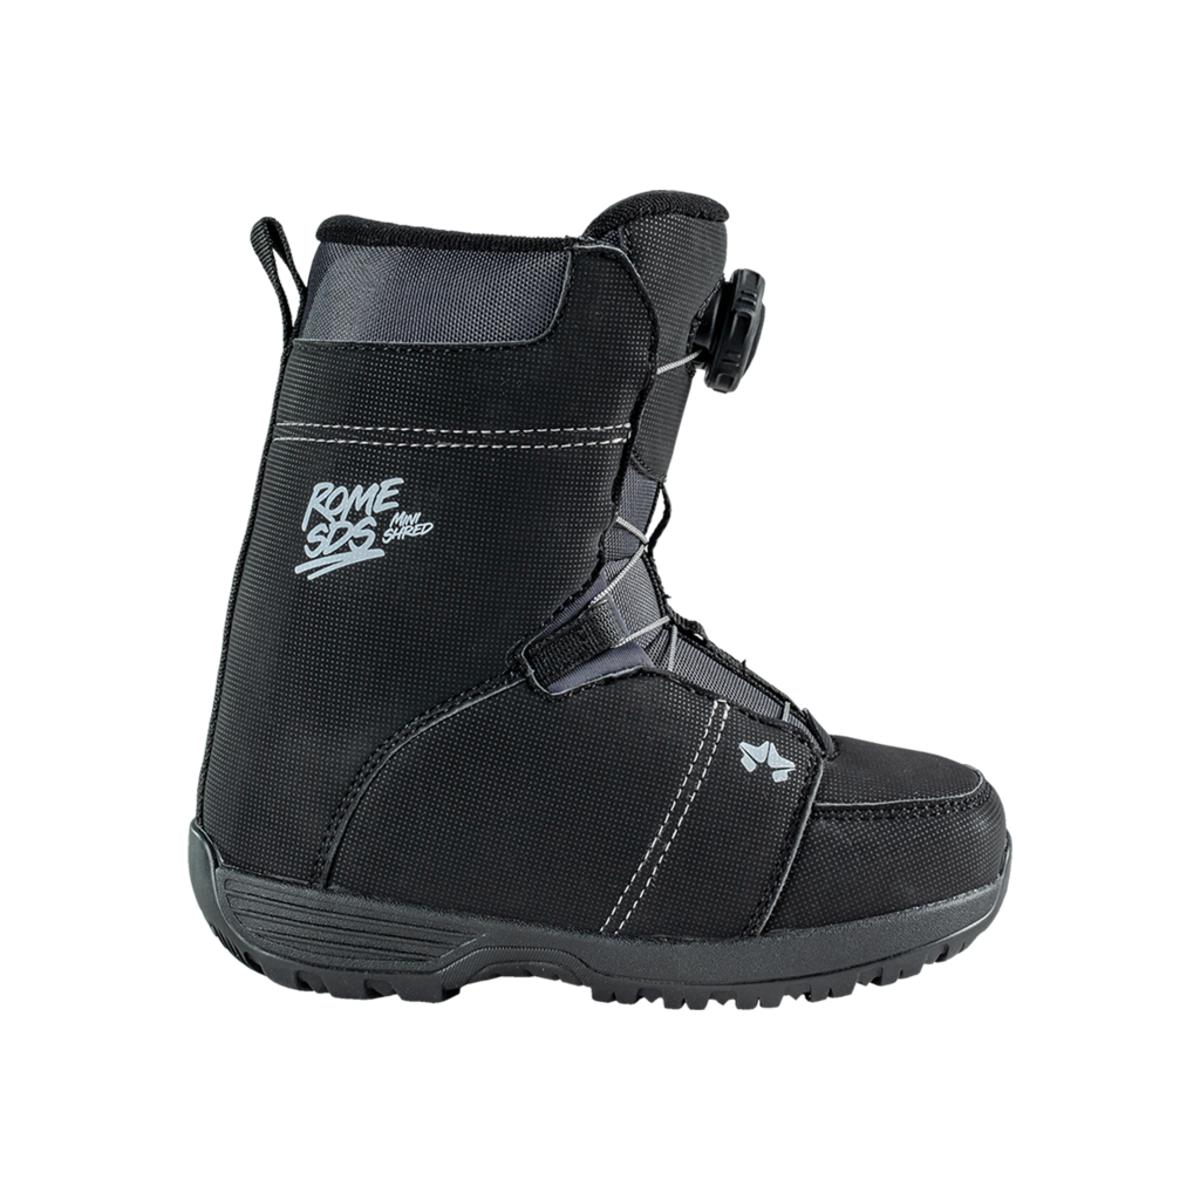 Rome Minishred 2021 Youth Snowboard Boots